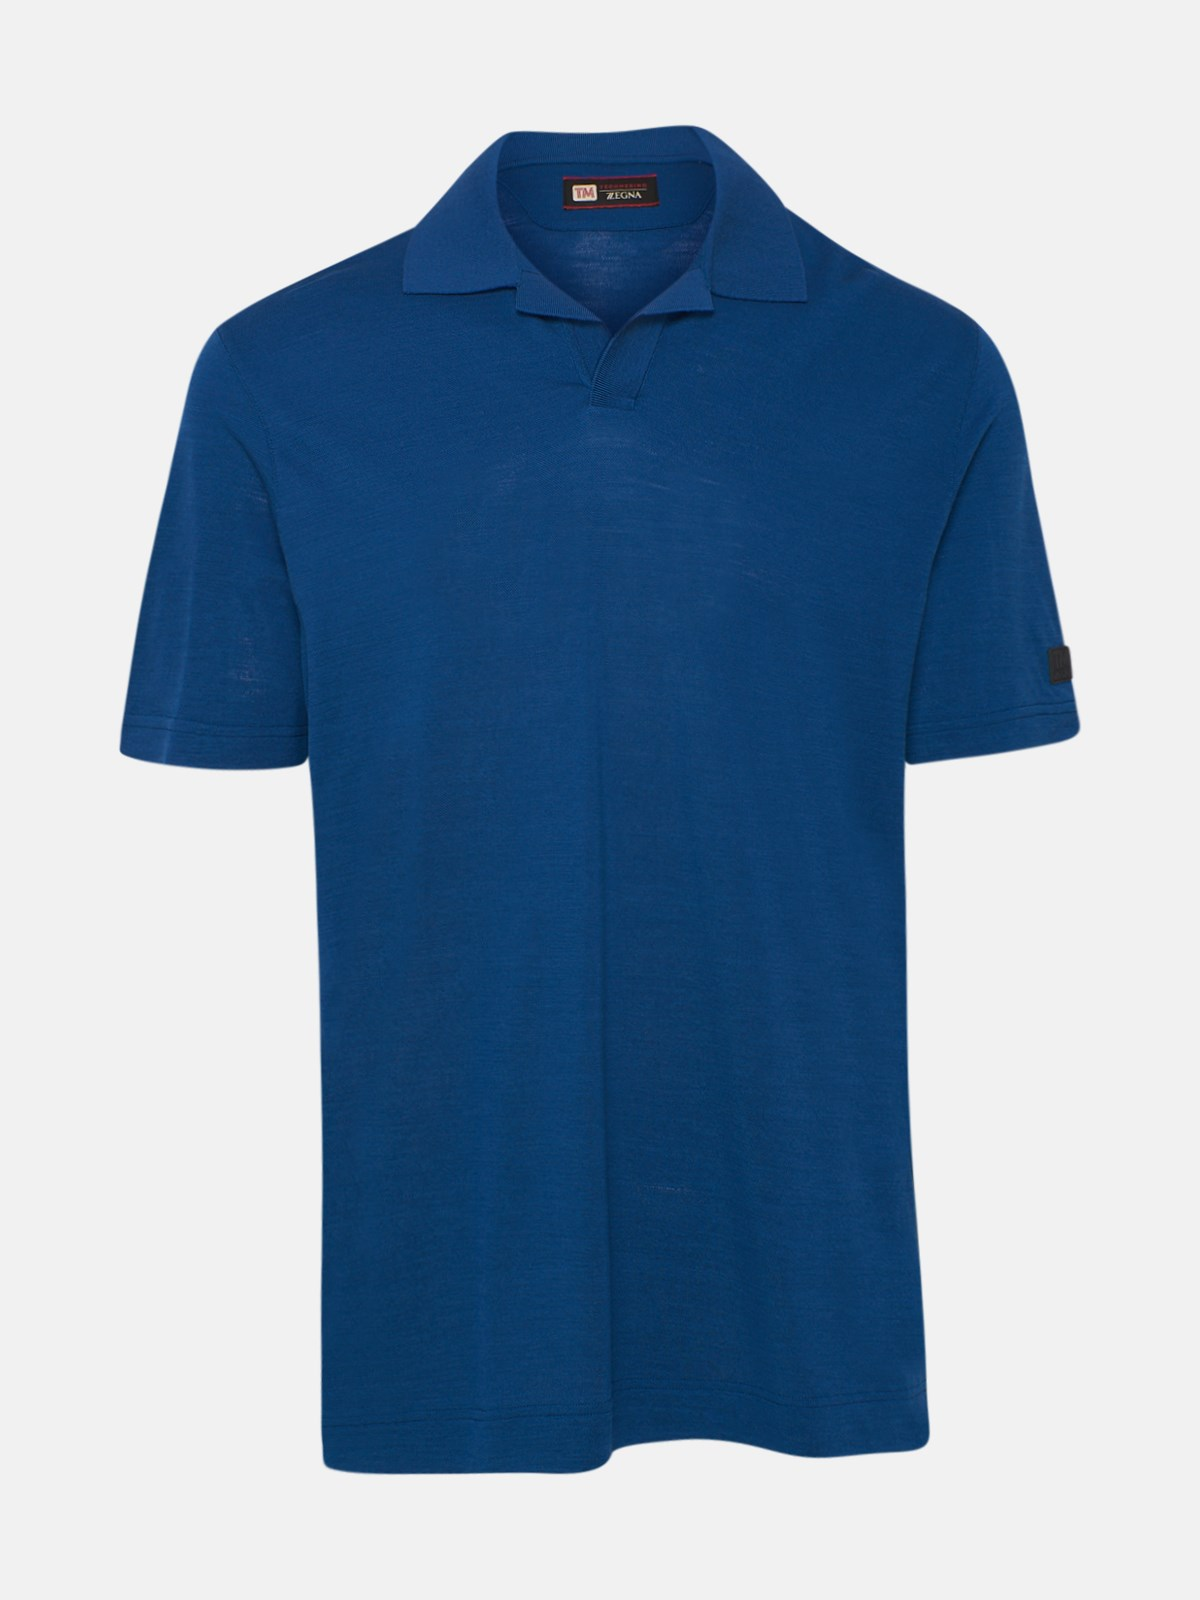 Z Zegna BLUE POLO SHIRT